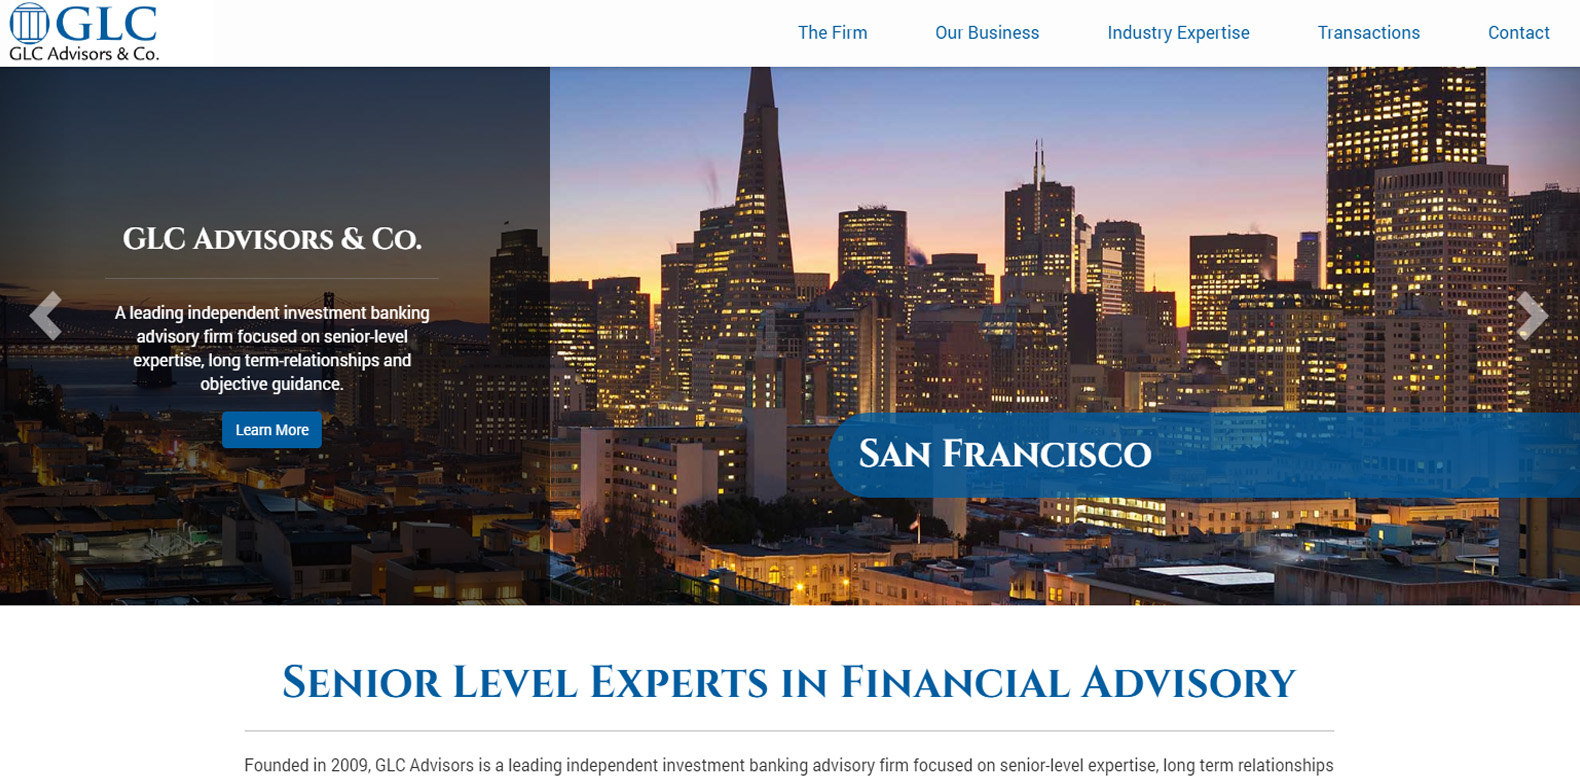 New Website Launch: GLC Advisors & Co.